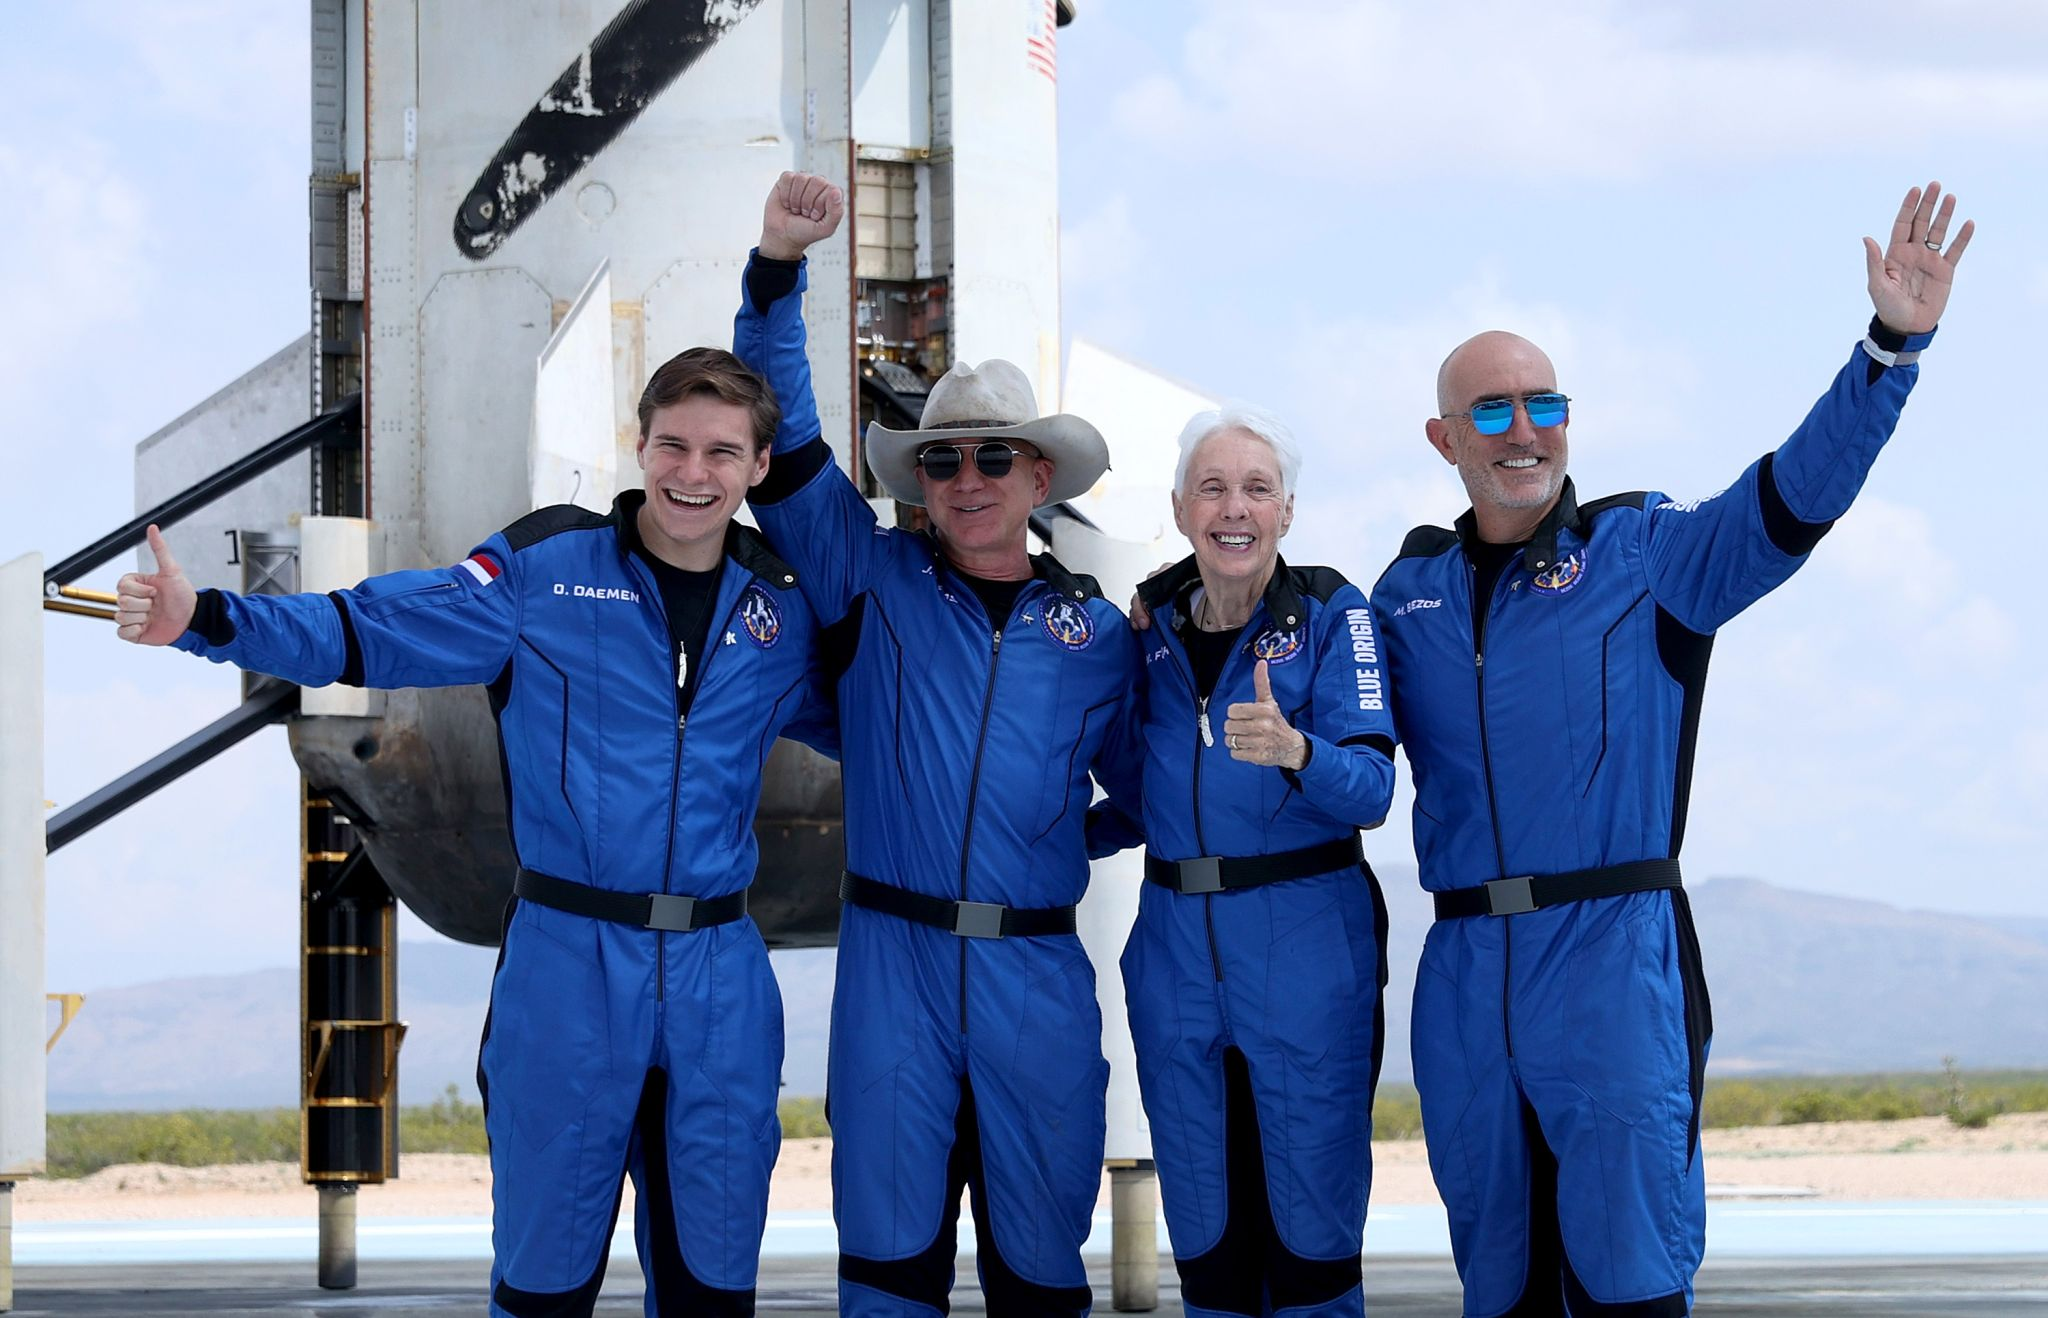 Jeff Bezos has successfully traveled to the edge of space